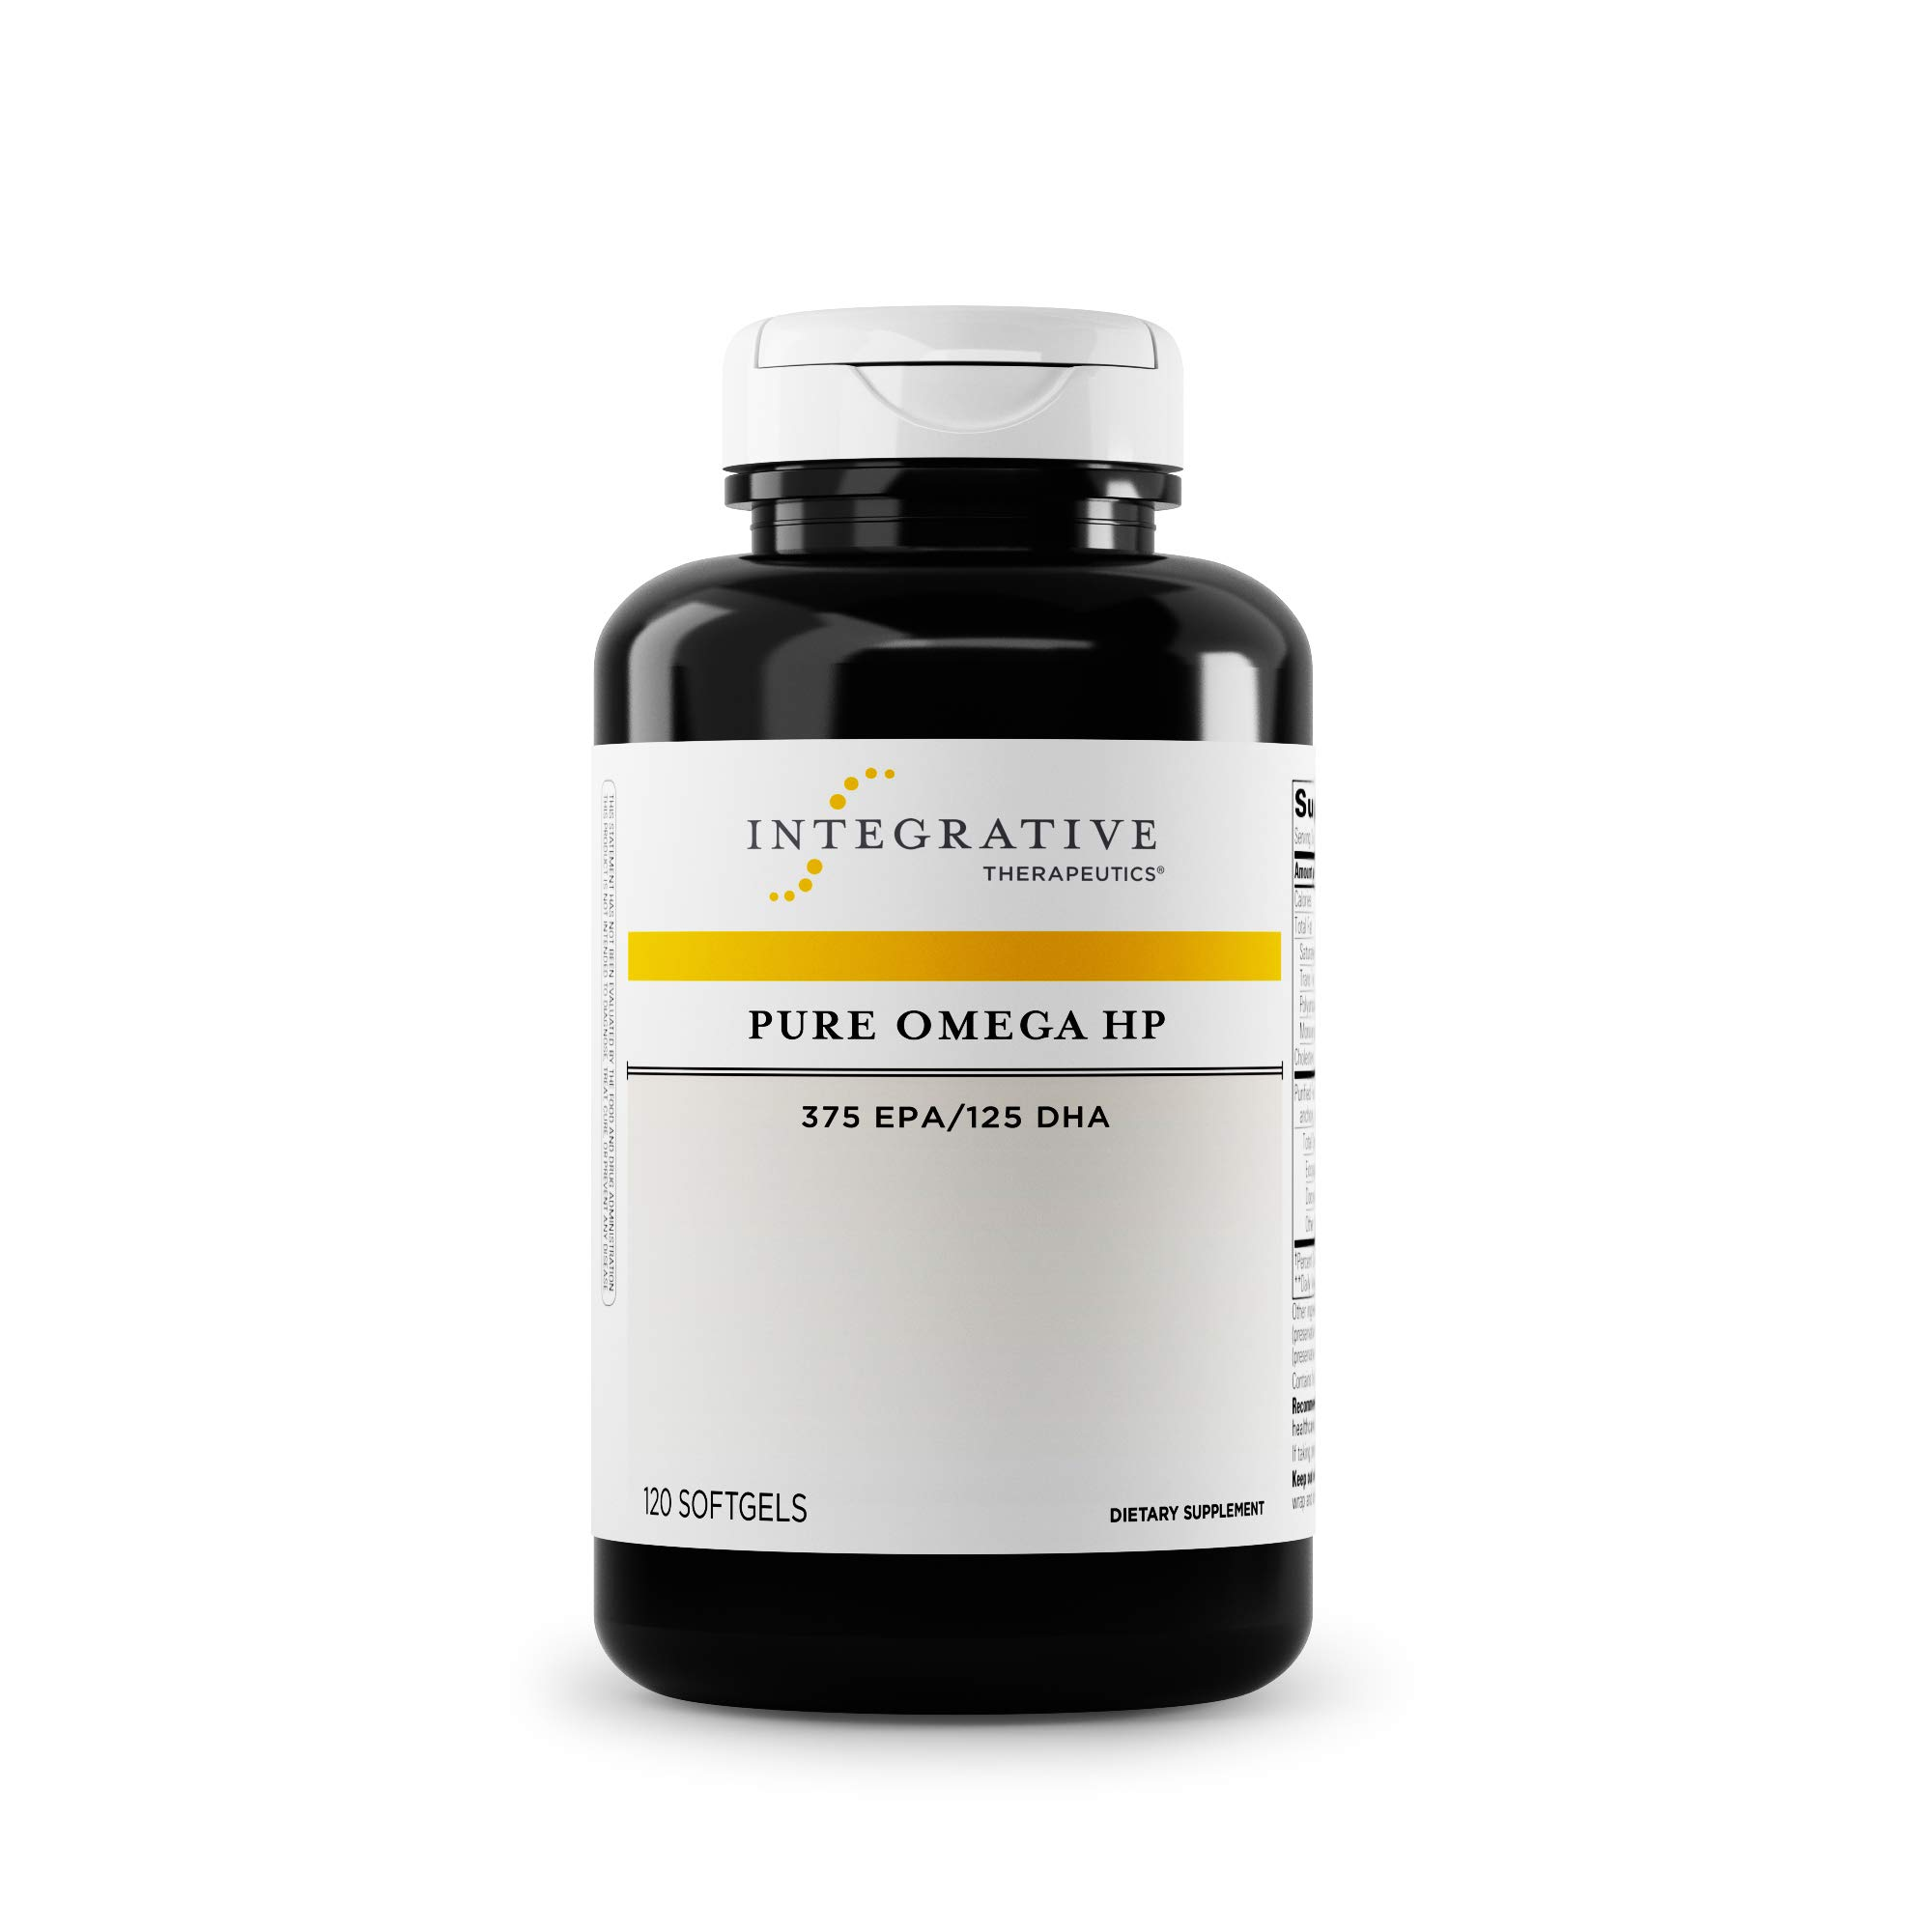 Integrative Therapeutics - Pure Omega HP Fish Oil Softgels - 2300 mg Omega 3 Fatty Acids with EPA and DHA - Wild Fish Oil - No Fishy Burp Back -Sustainably Sourced - 120 Count by Integrative Therapeutics